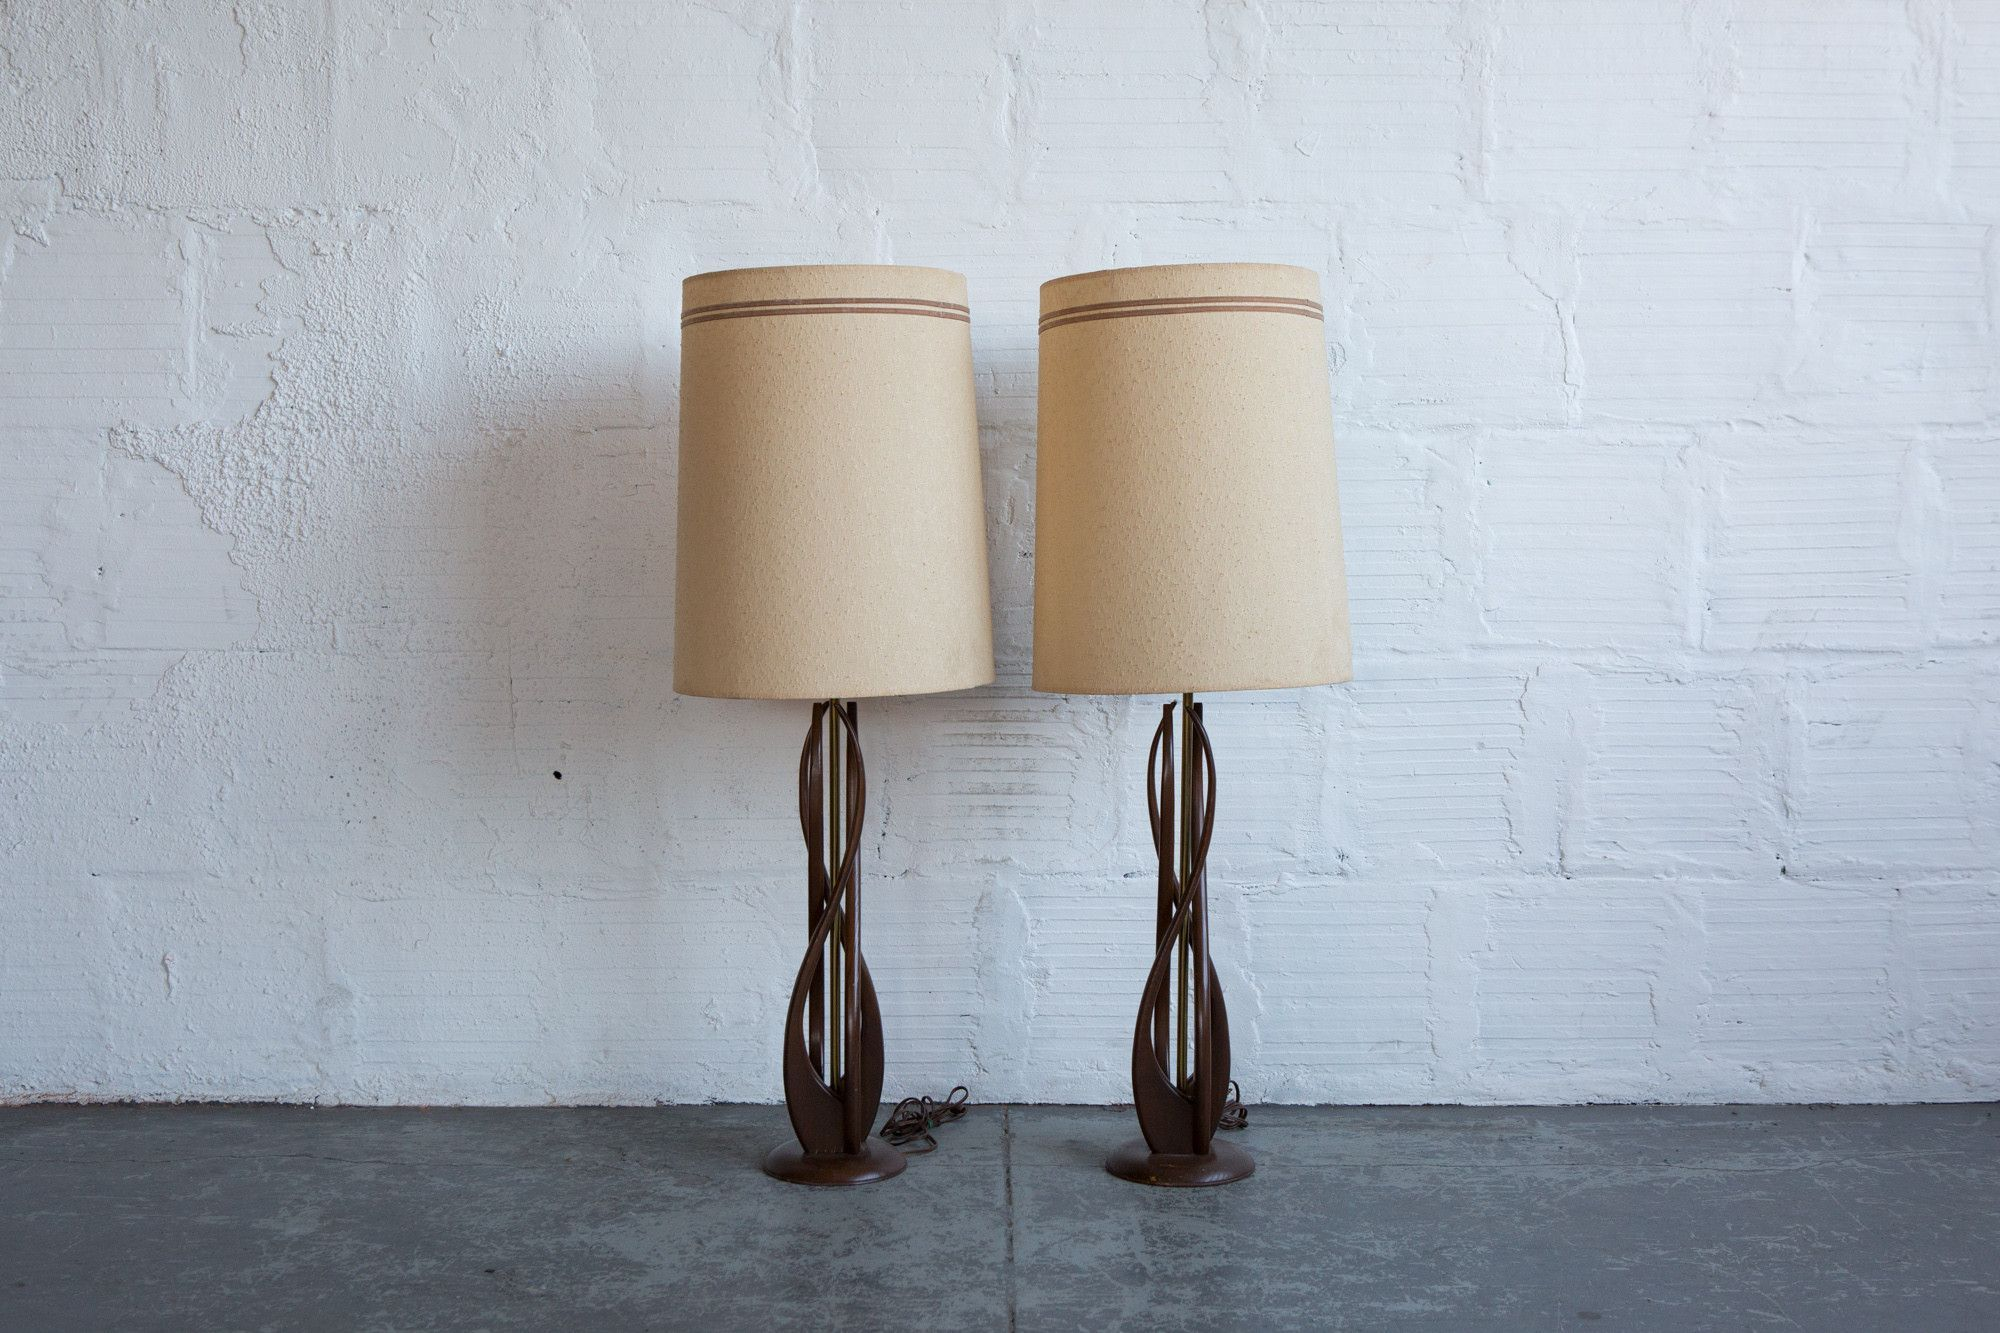 MCM Carved Wood Table L& (set of 2) & MCM Carved Wood Table Lamp (set of 2) | Wood table Table lamp sets ...